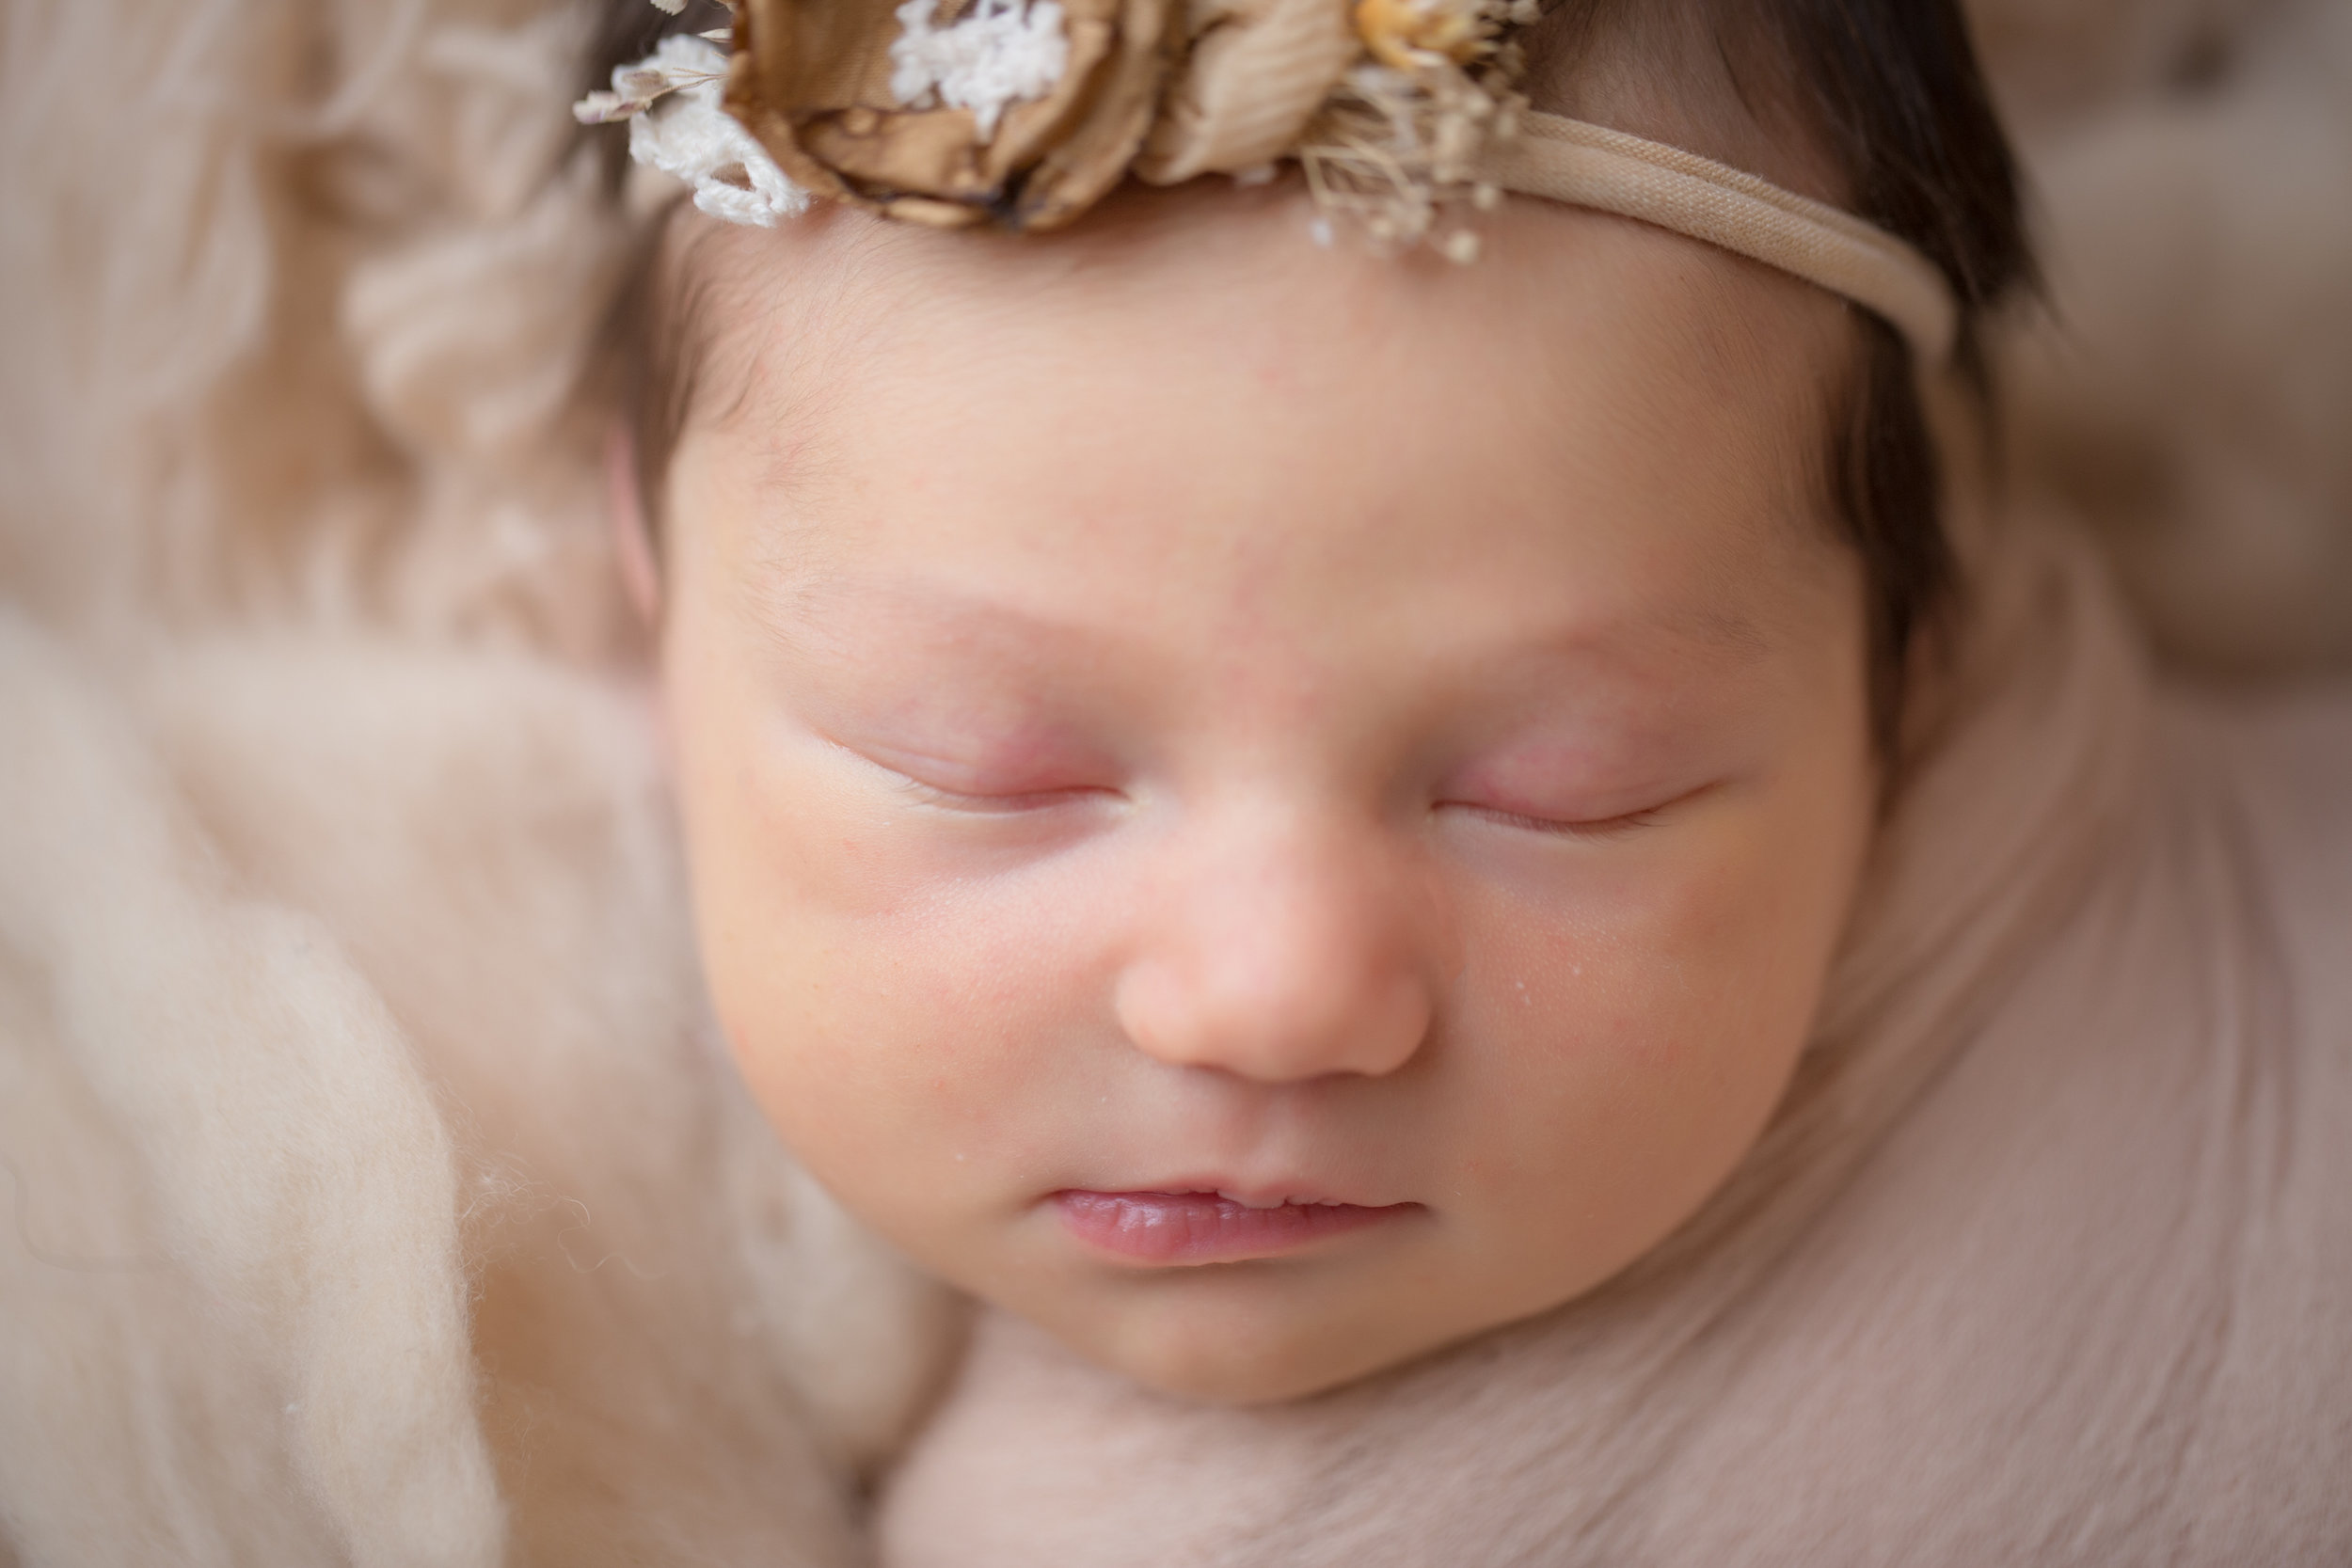 baby girl's newborn photo shoot in studio laying on a tan backdrop with a beautiful headband